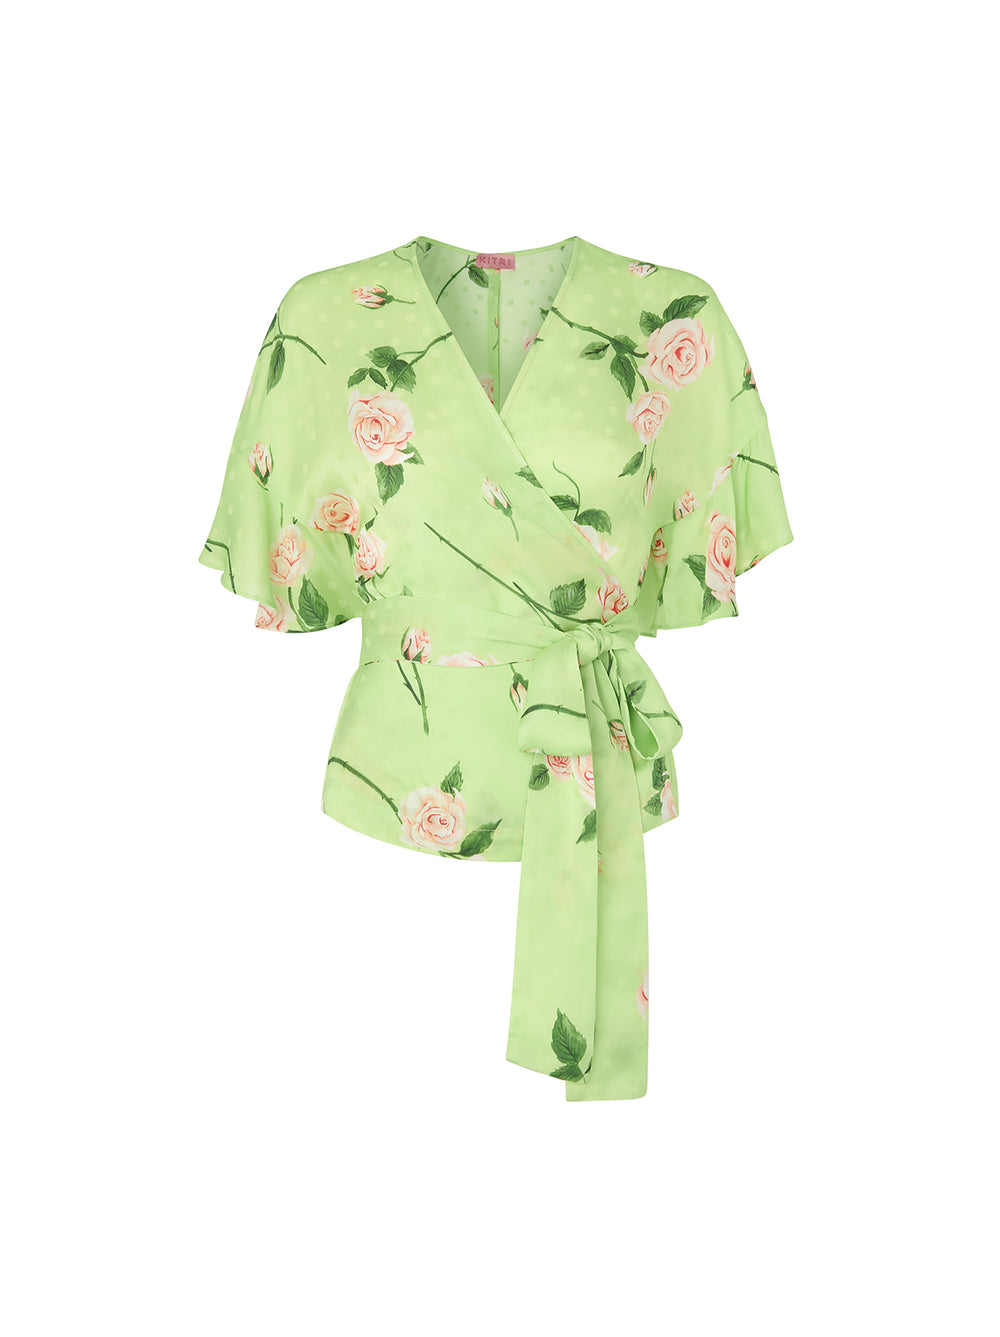 Alexis Green Floral Print Frill Wrap Top by KITRI Studio